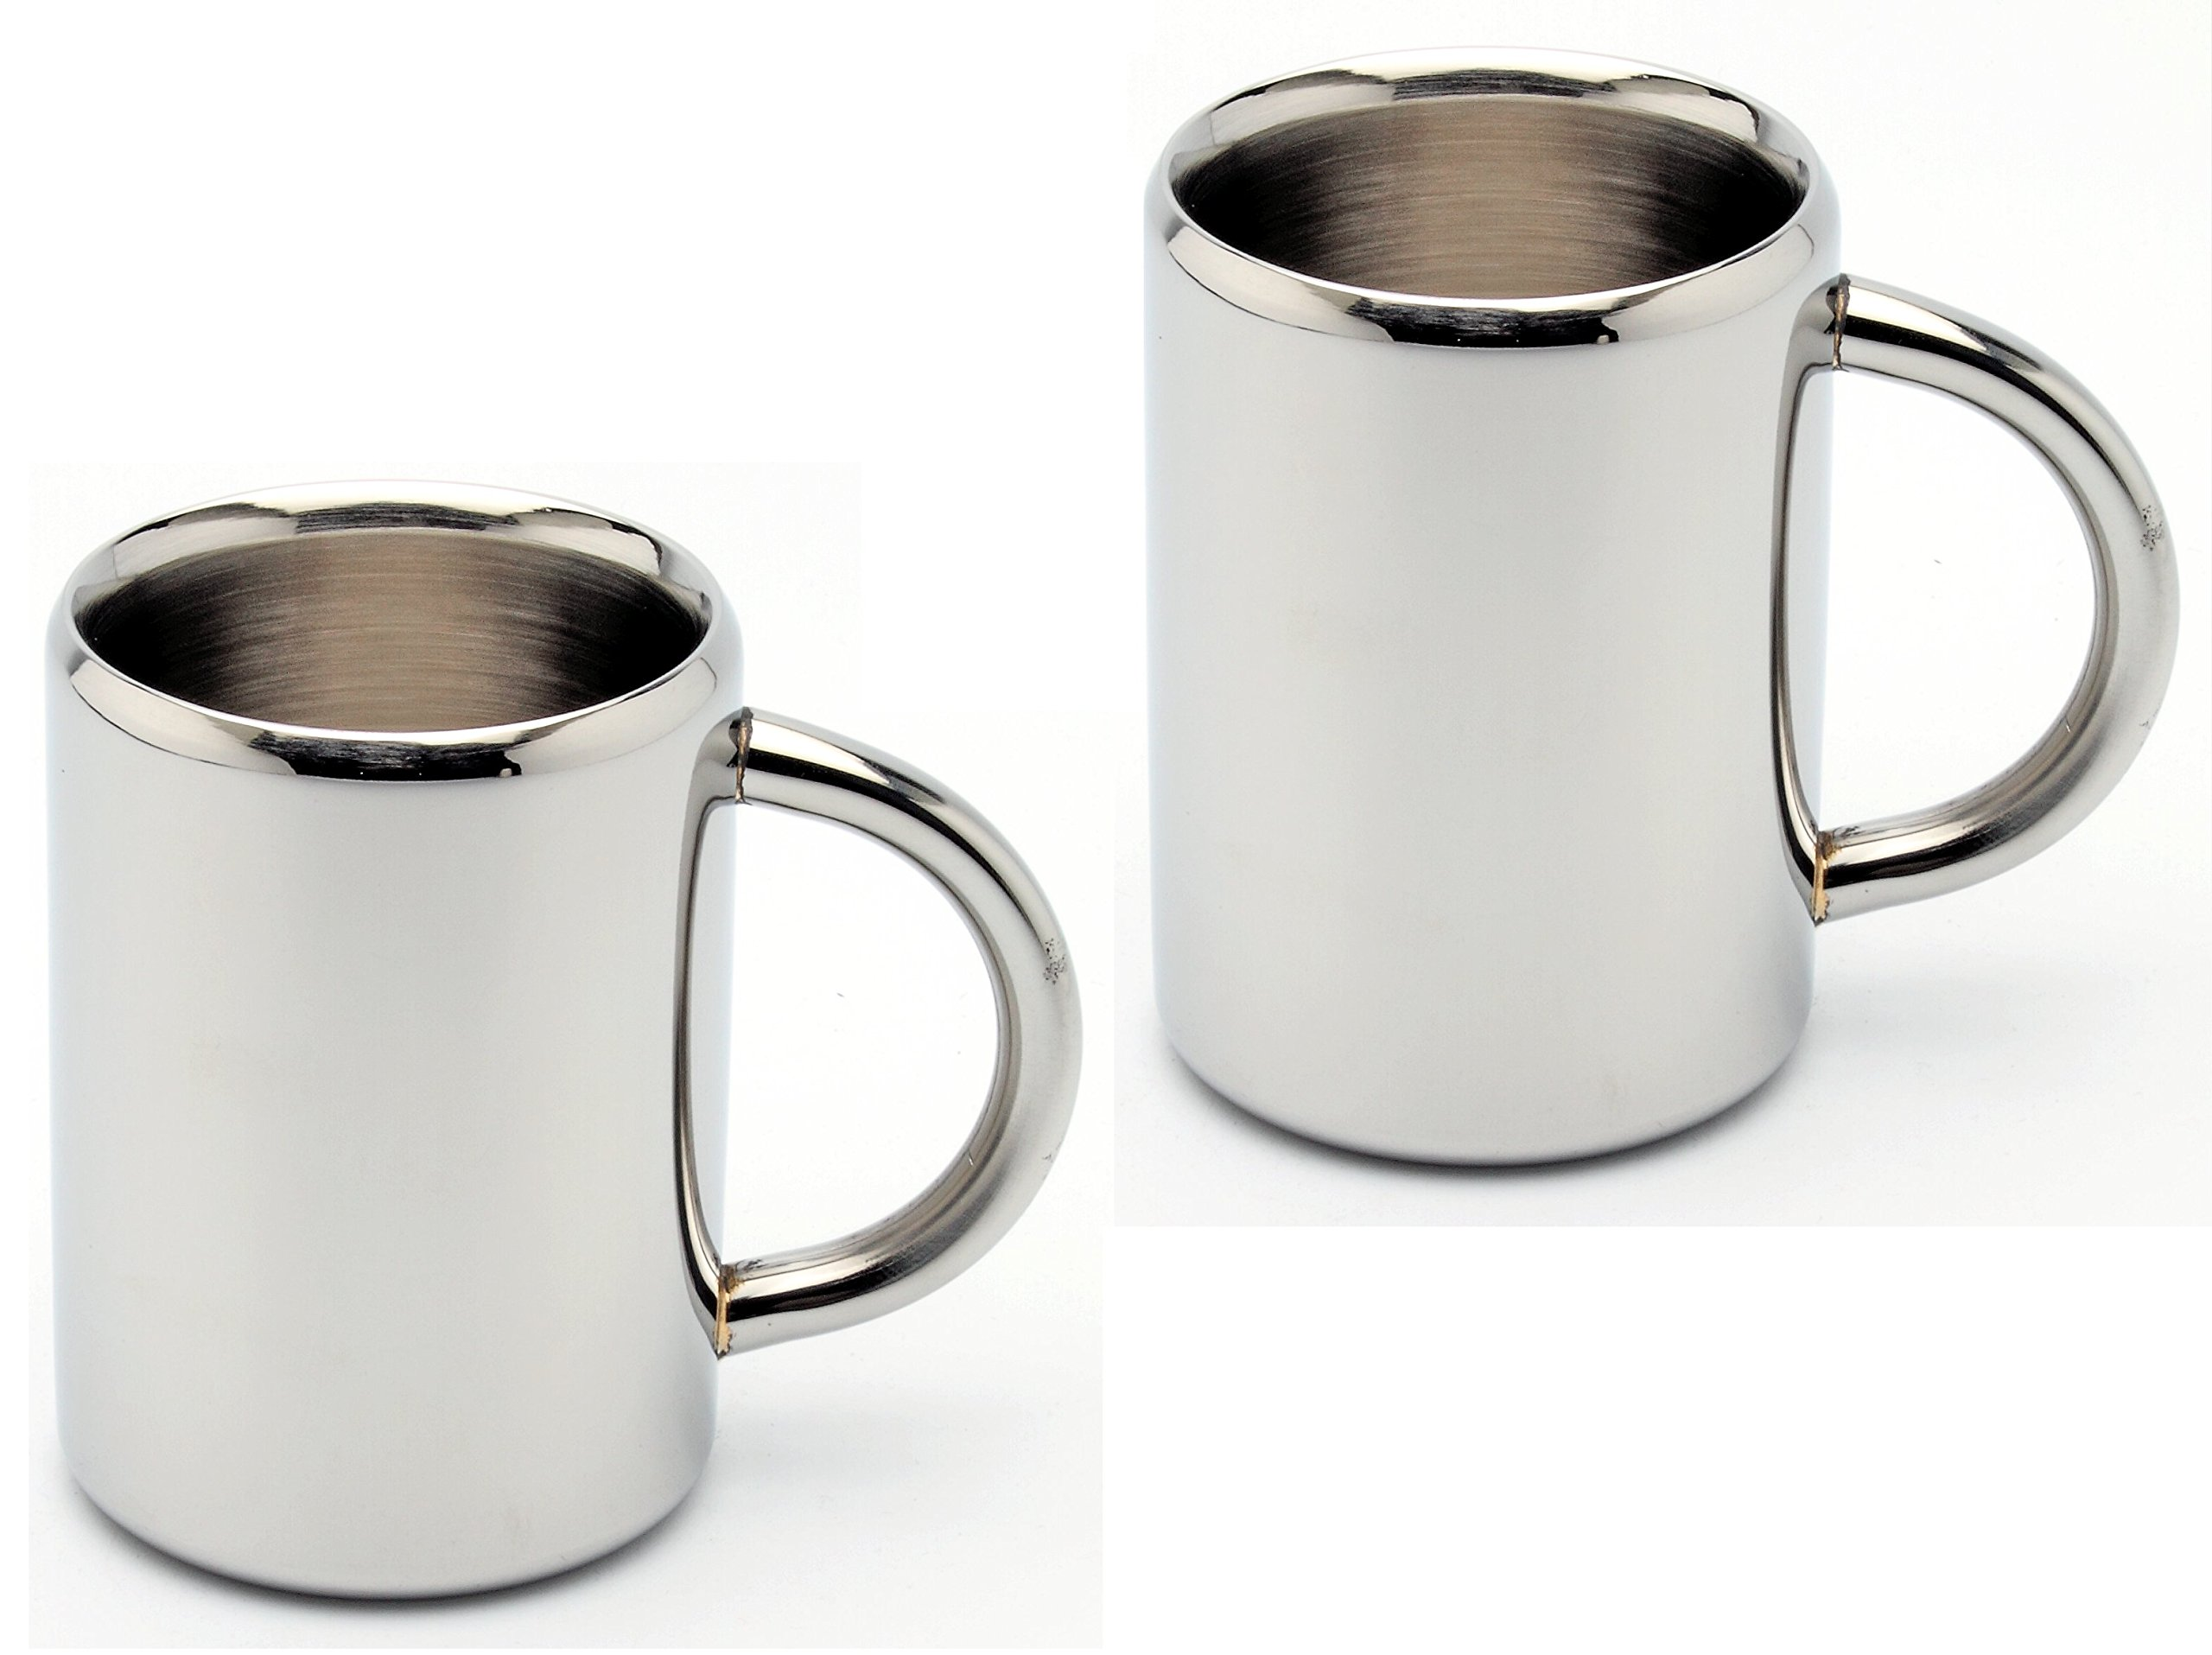 Coffee Mugs - Set of 2, High Quality Stainless Steel, Double Wall Mug